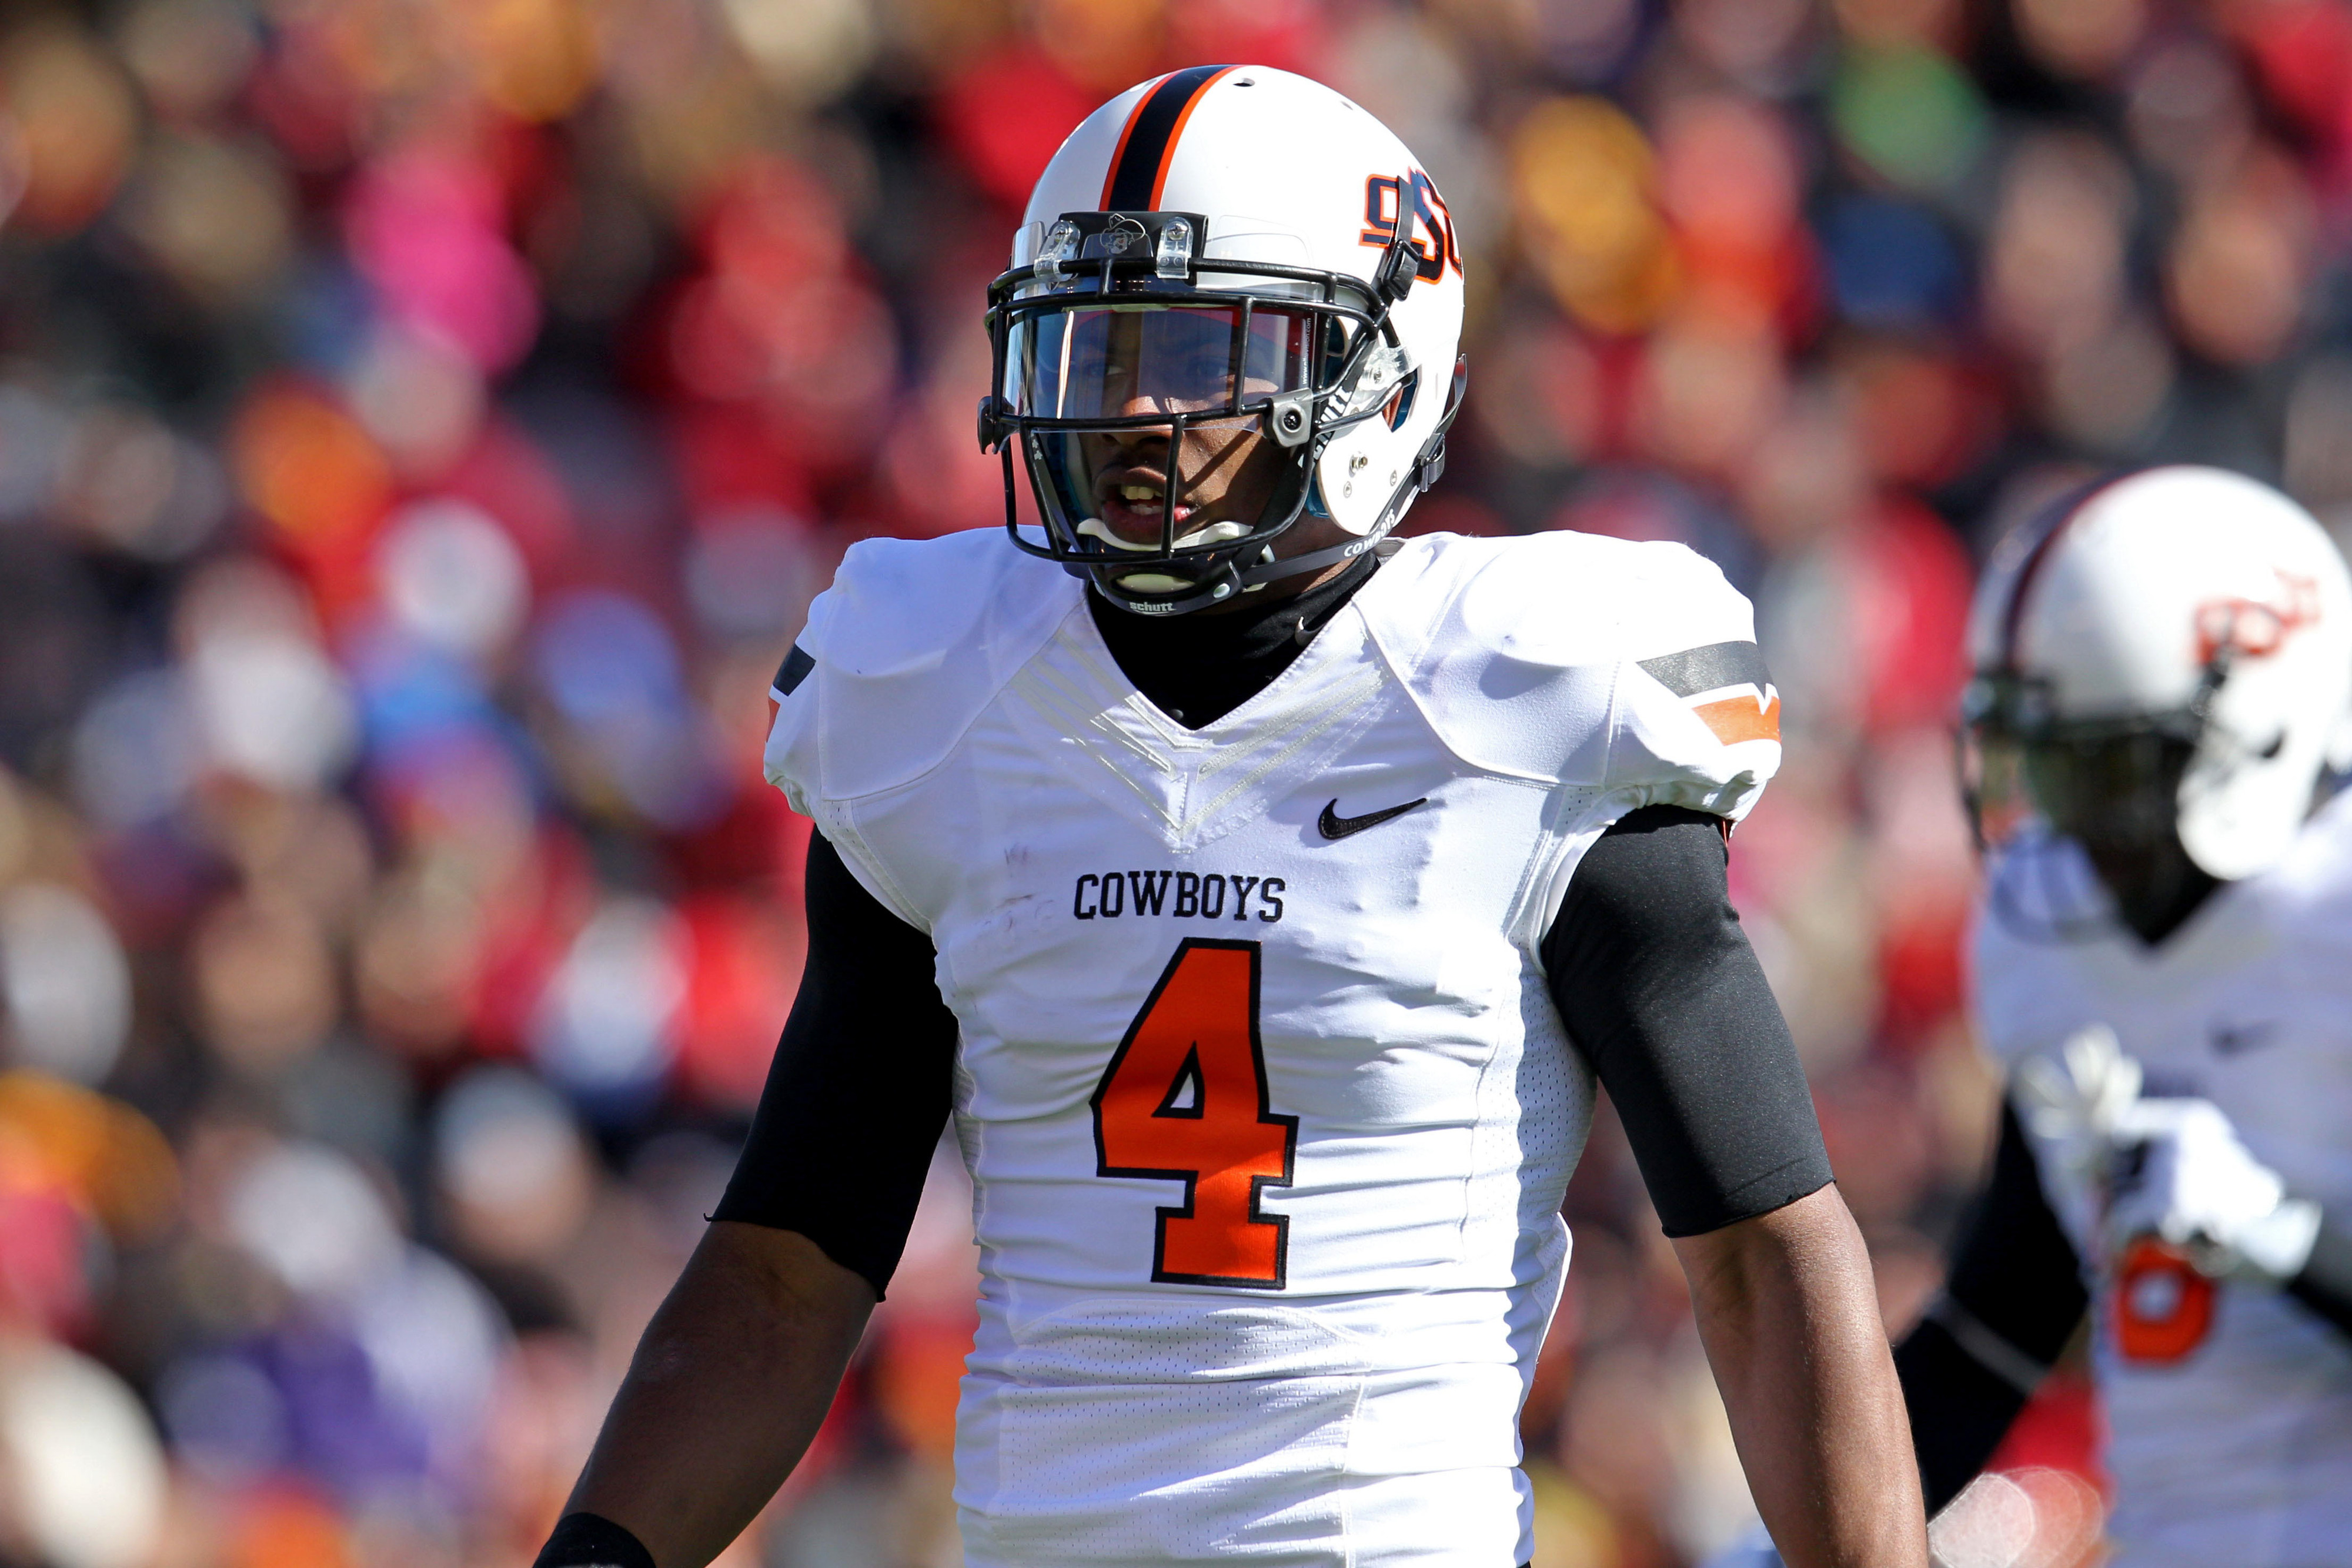 Oklahoma State corner Justin Gilbert impressed during the NFL Scouting Combine